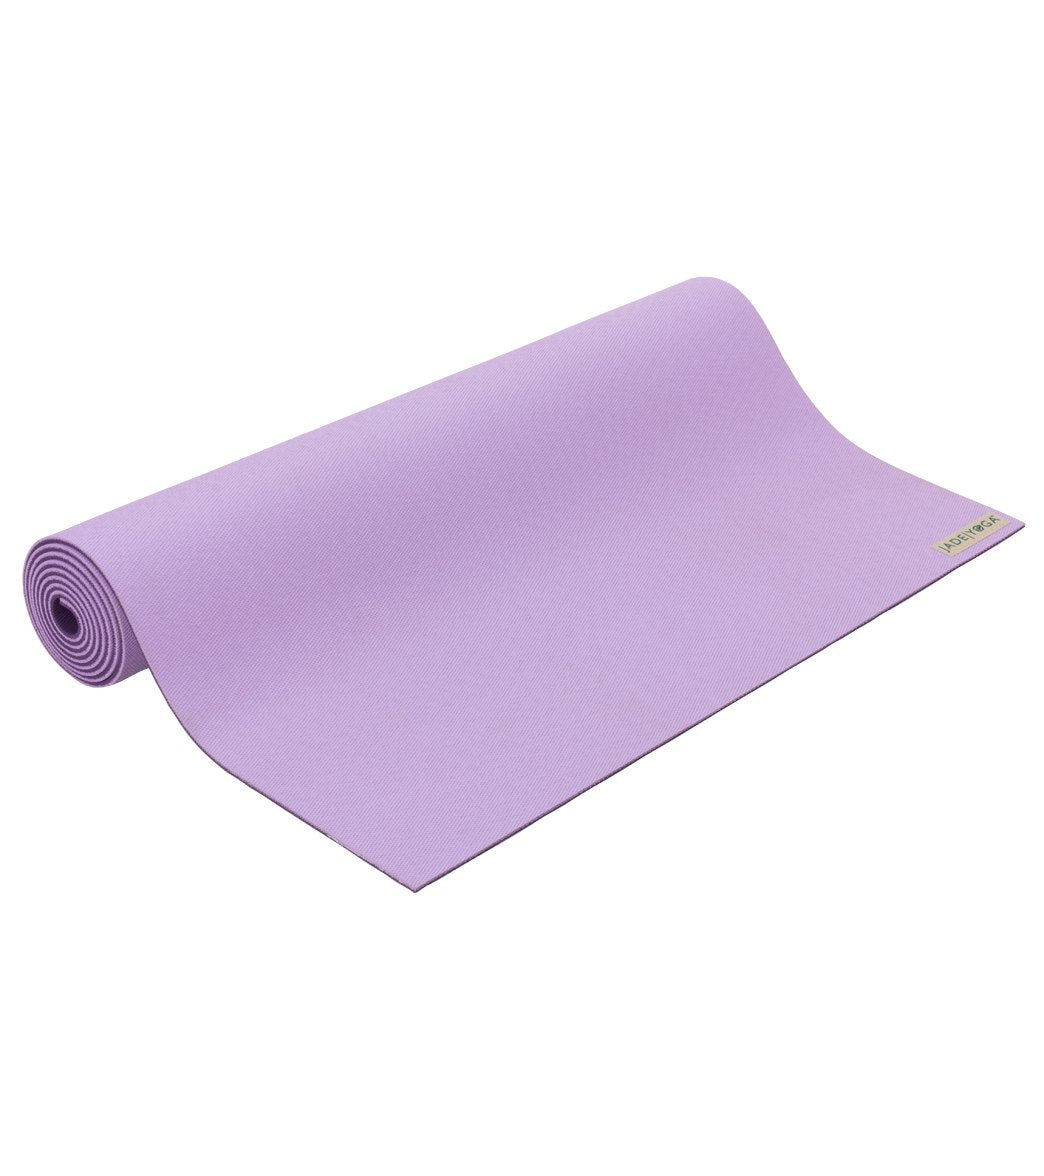 Jade Yoga Harmony Two Tone Natural Rubber Yoga Mat 71 5mm At Yogaoutlet Com